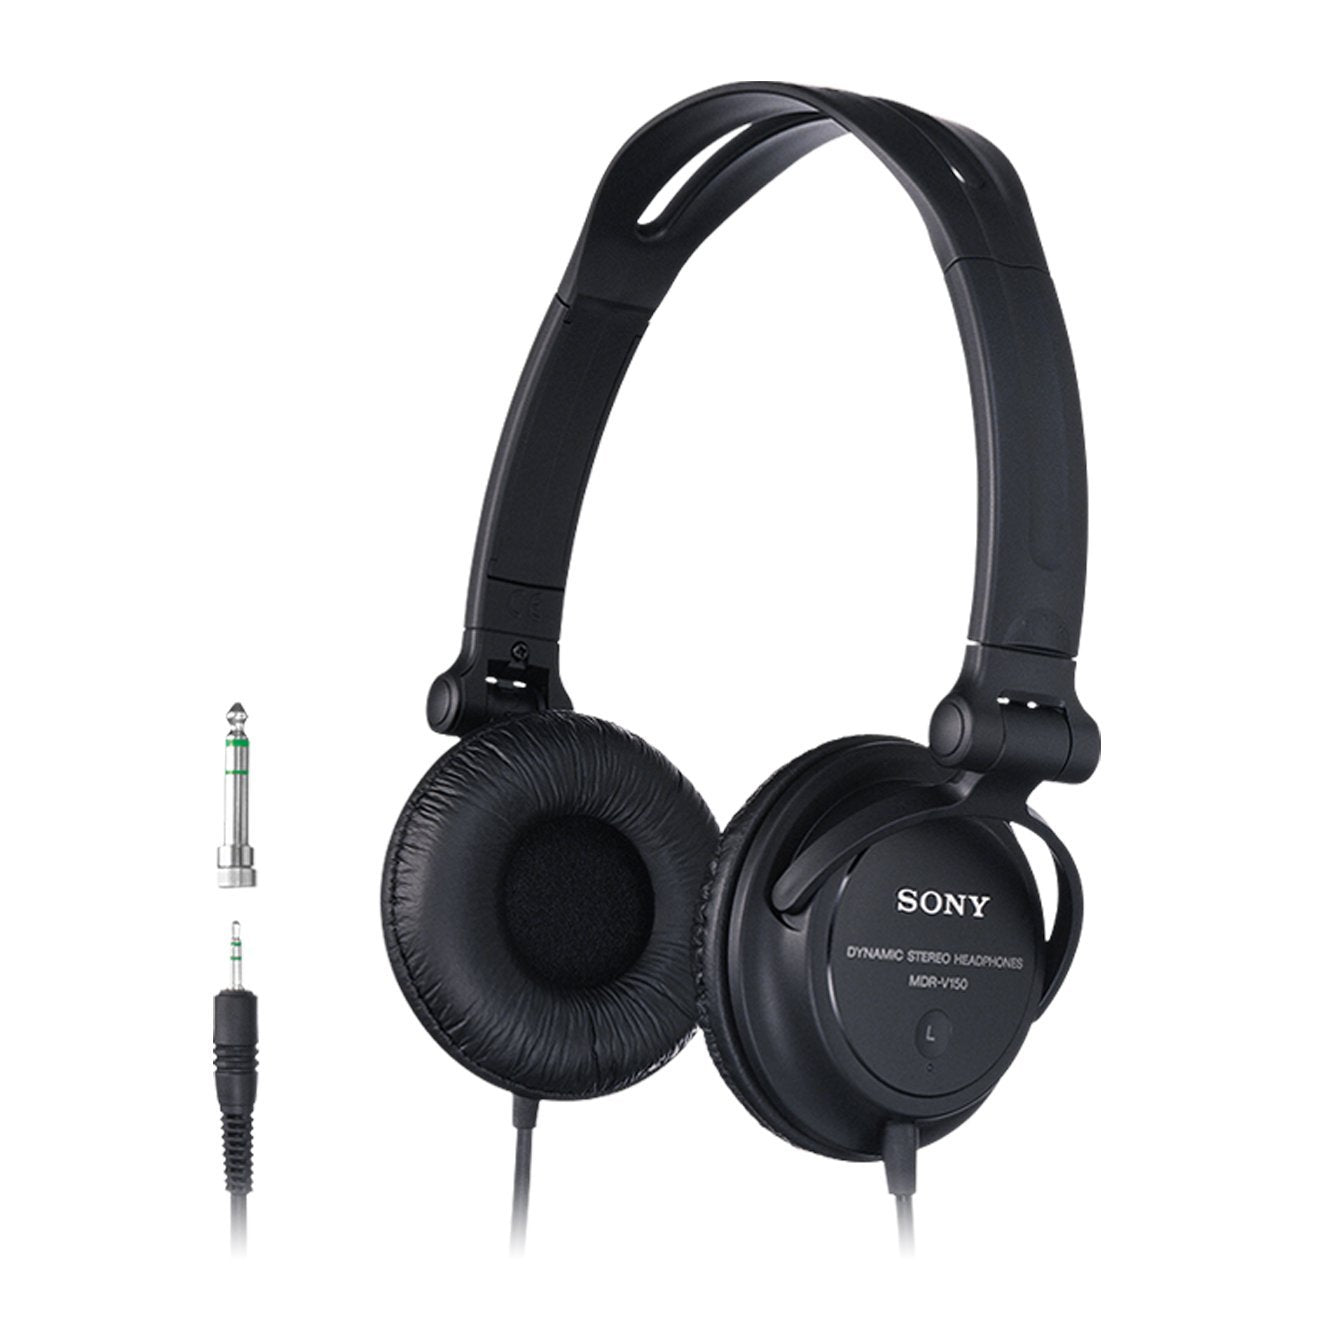 Sony MDR-V150 Headphones with Reversible Housing for DJ Monitoring - Black[Accessories]